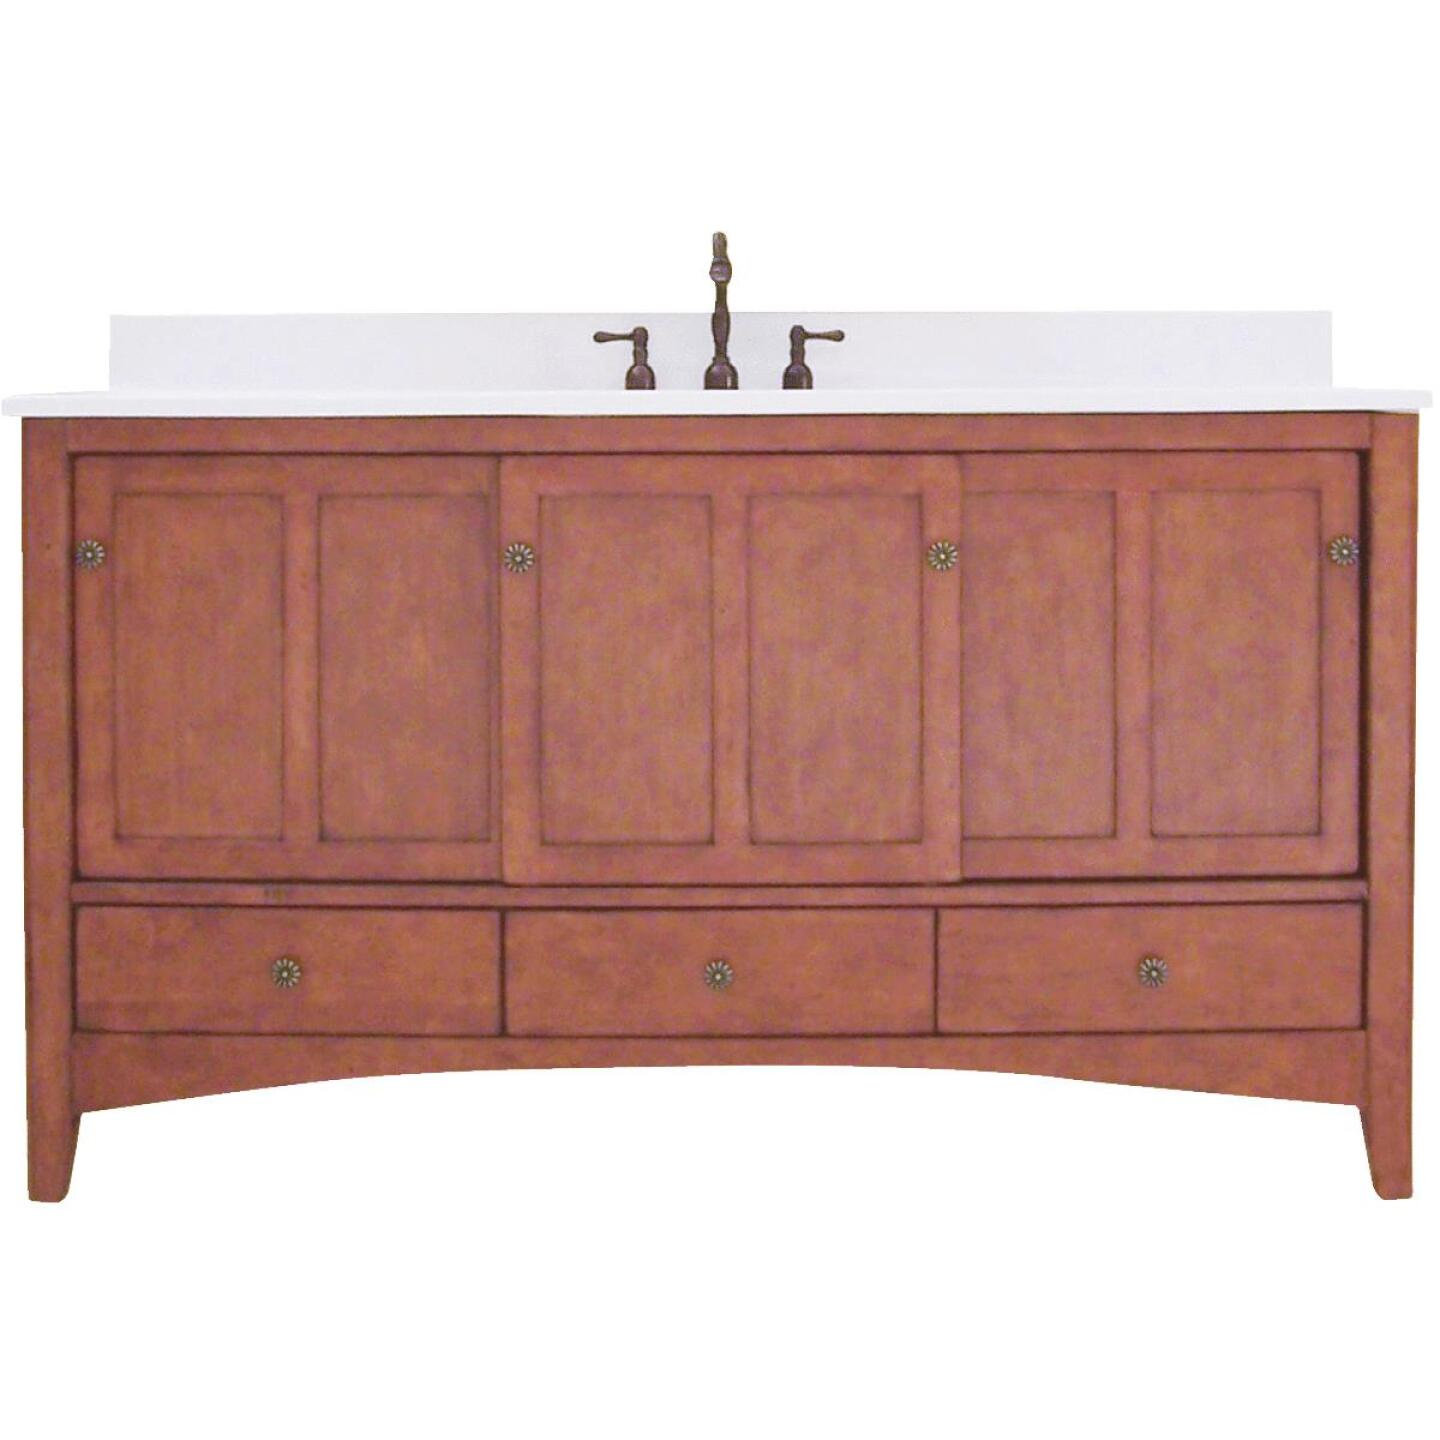 Sunny Wood Expressions Warm Cinnamon 60 In. W x 34 In. H x 21-1/2 In. D Vanity Base, 3 Door/3 Drawer Image 1